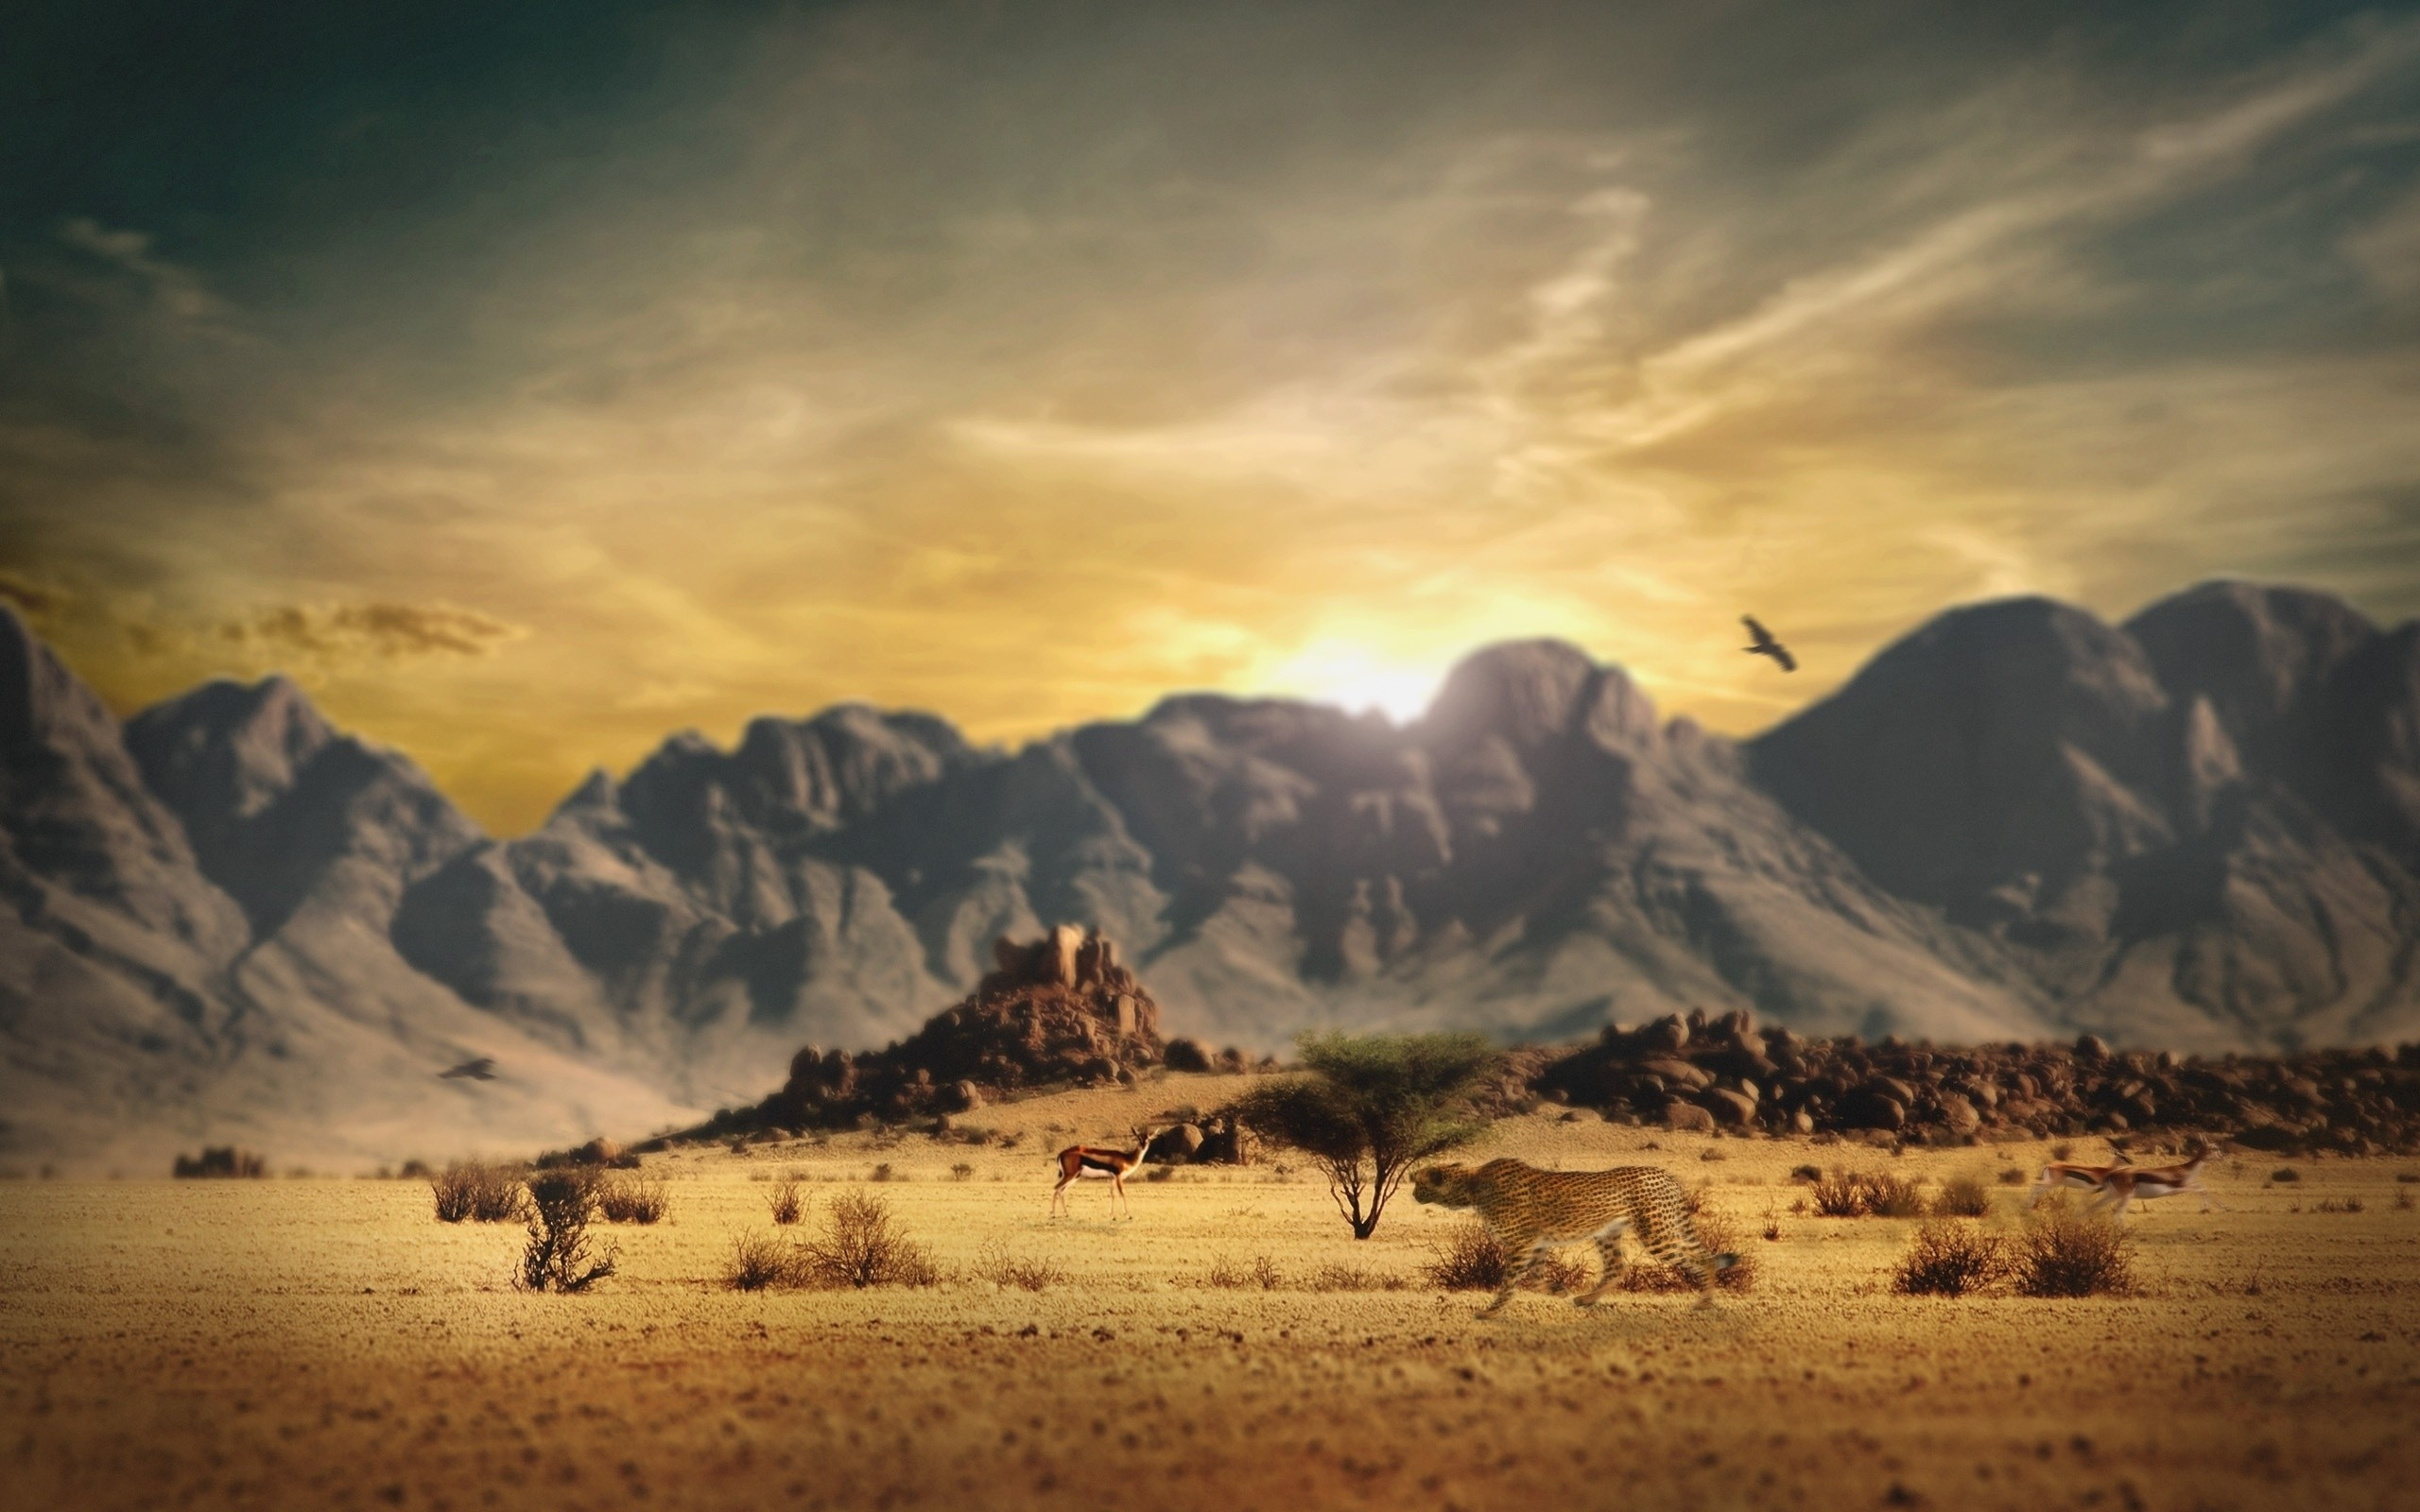 2560x1600 Wallpaper Cheetah, Savanna, Hunting, Mountains